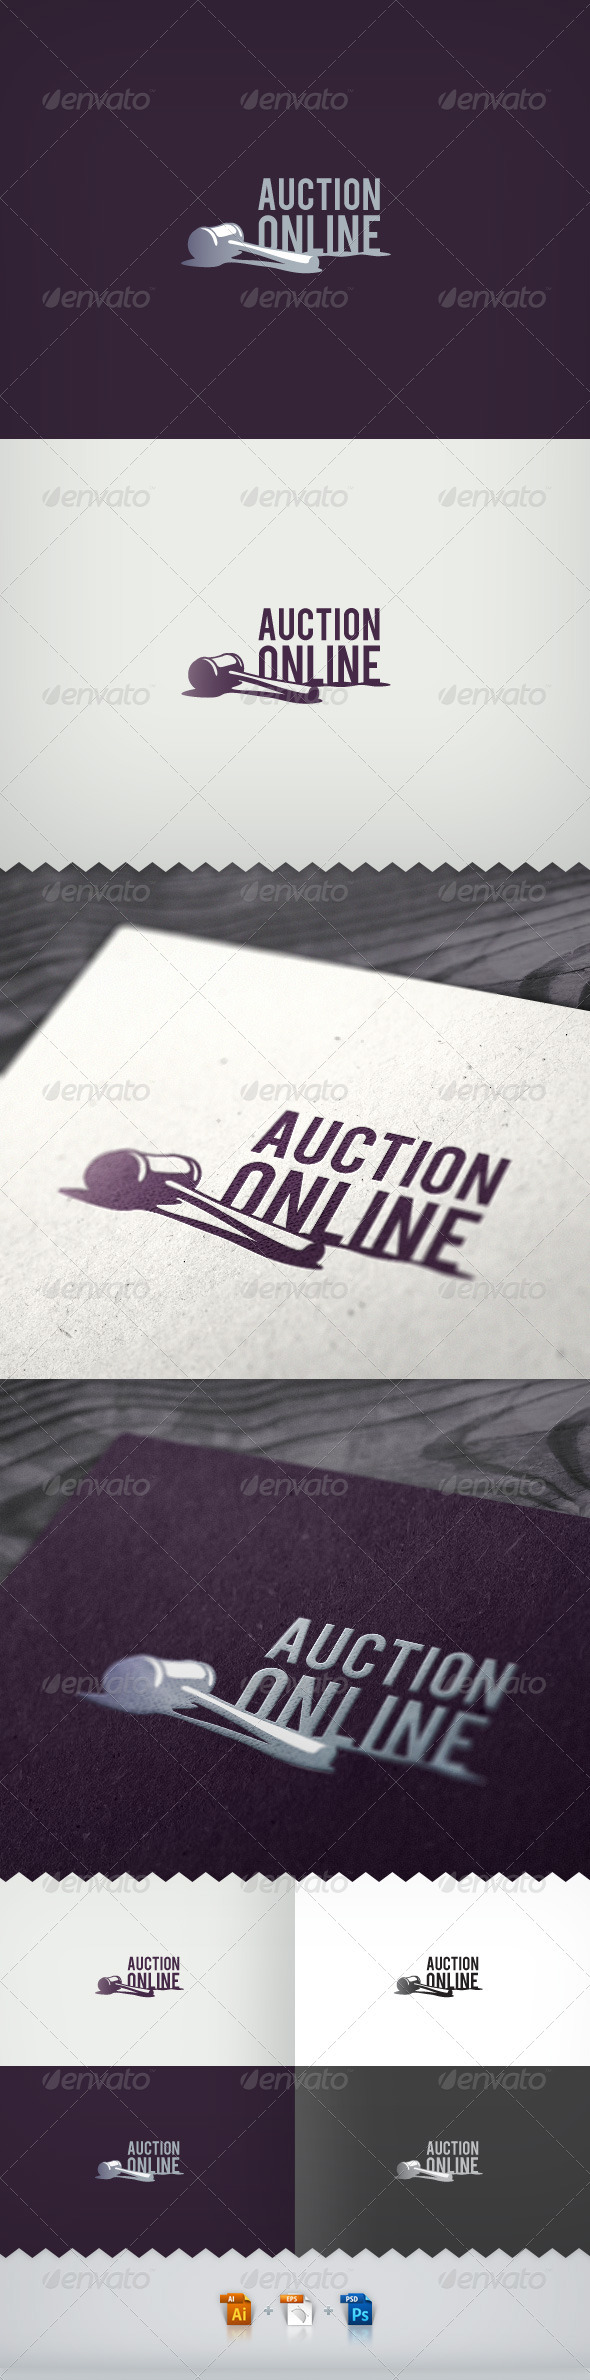 Auction Online Logo - Objects Logo Templates